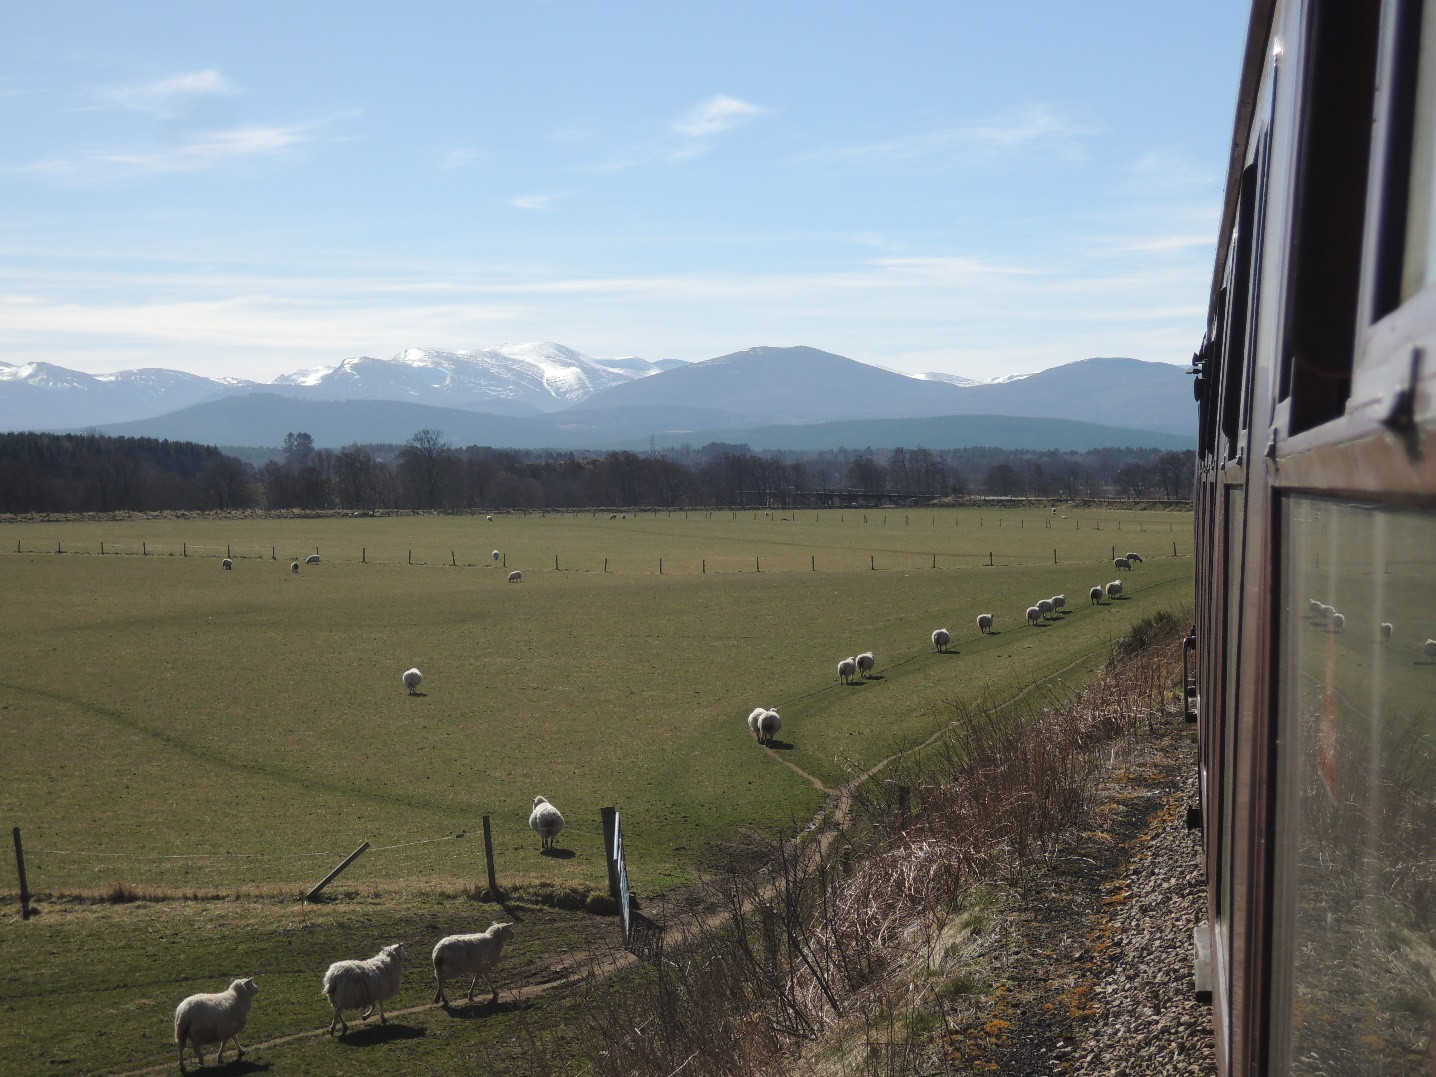 The Cairngorms from the Strathspey Railway. Photo by Chris Crocker.